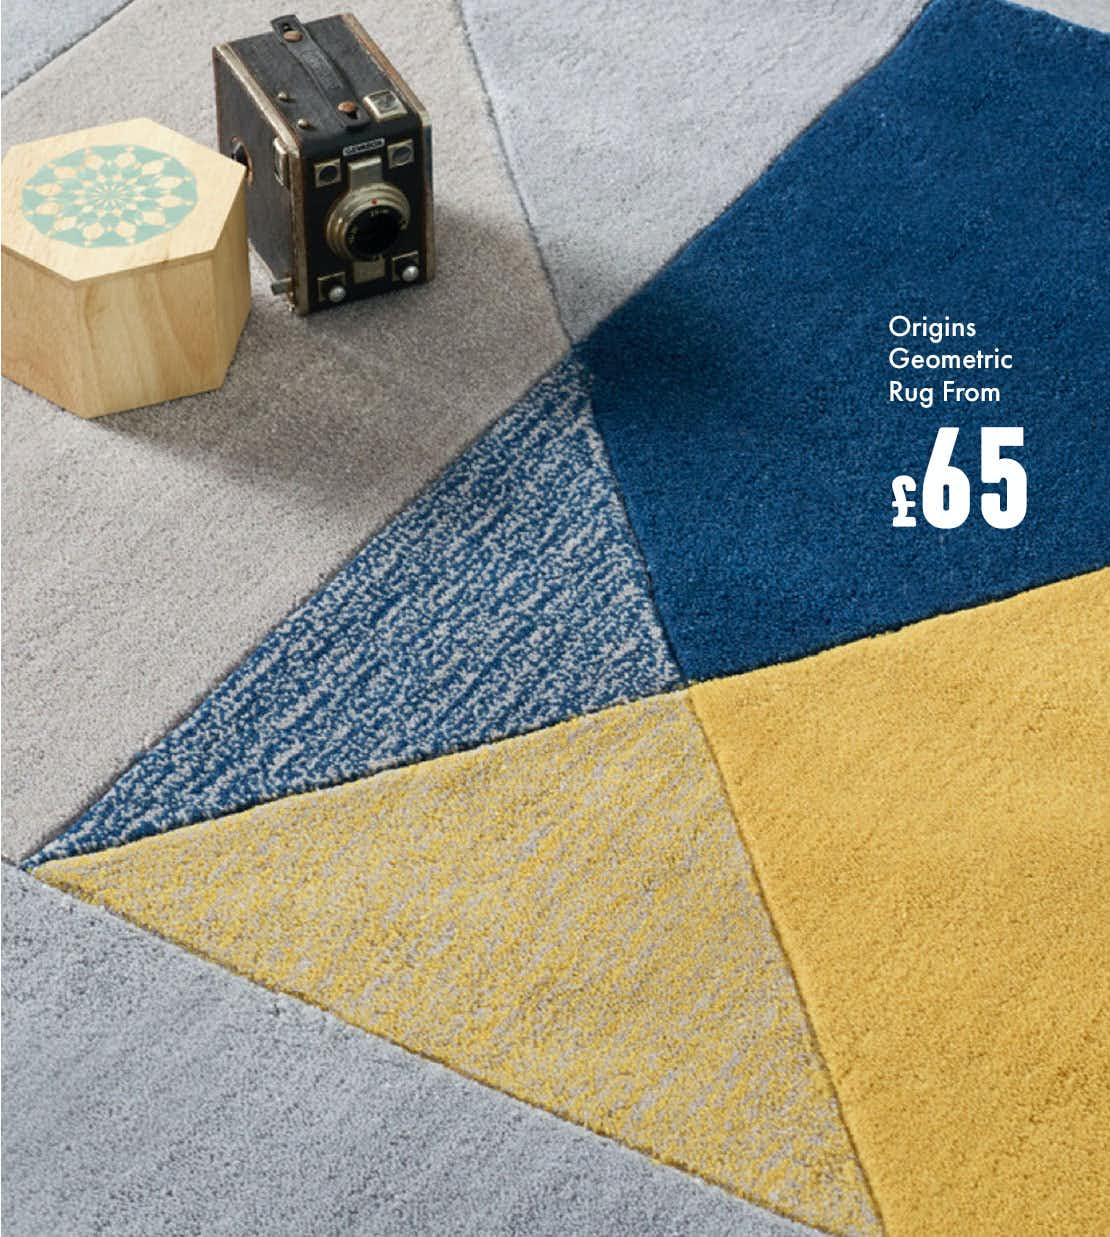 SHOP GEOMETRIC RUGS